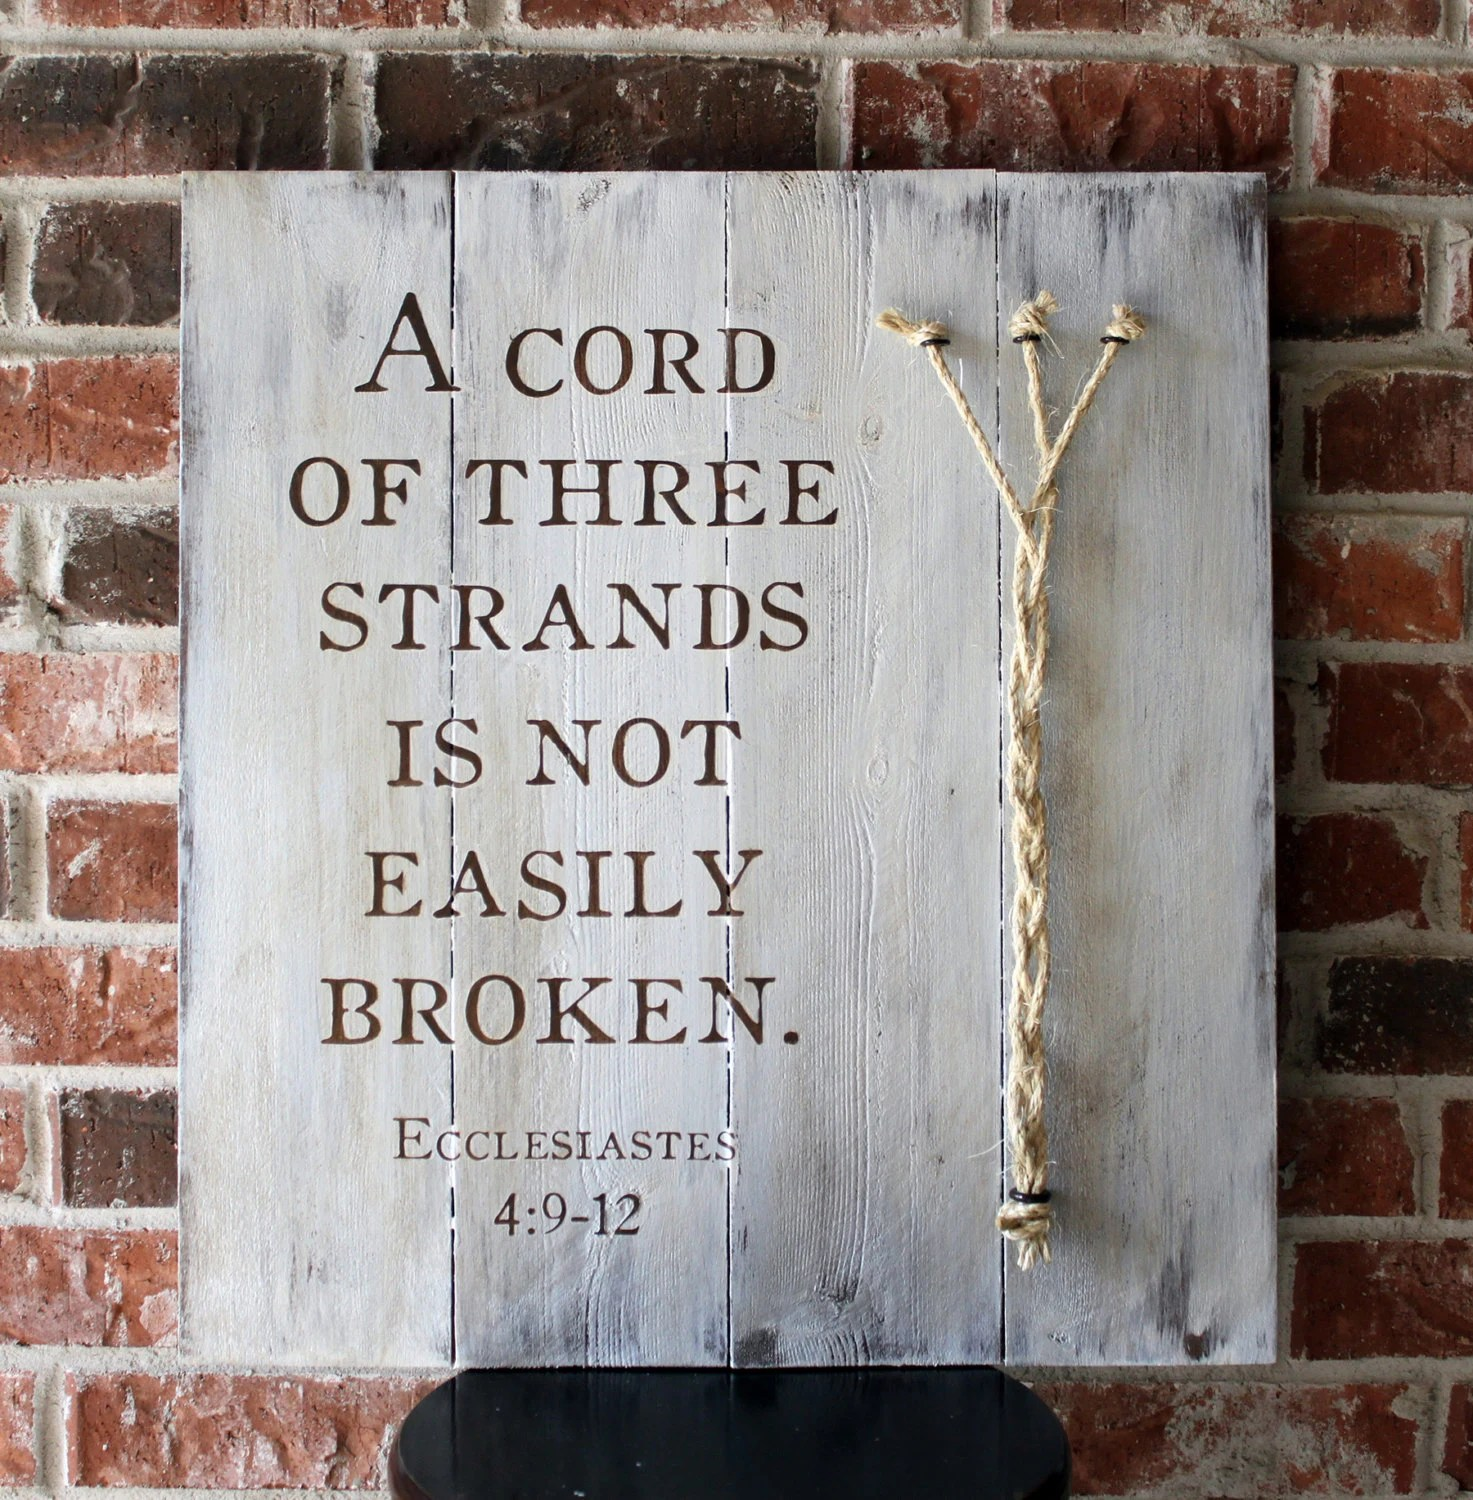 Bf Gf Quotes Wallpaper Handmade A Cord Of Three Strands Is Not Easily Broken By